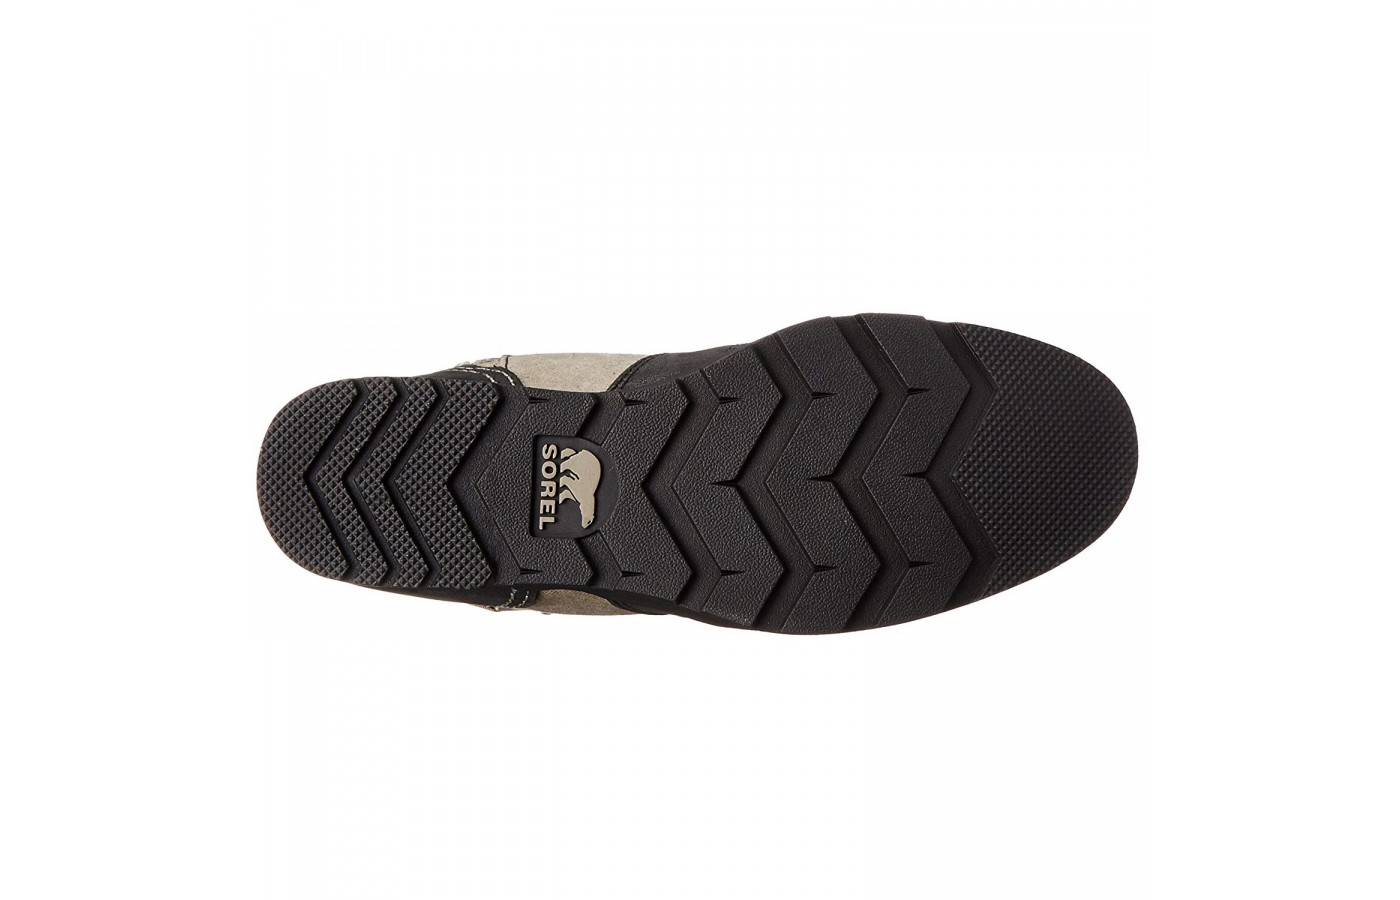 The Sorel Major Carly offers an all rubber outsole to protect the wearers foot from snow beneath the foot.